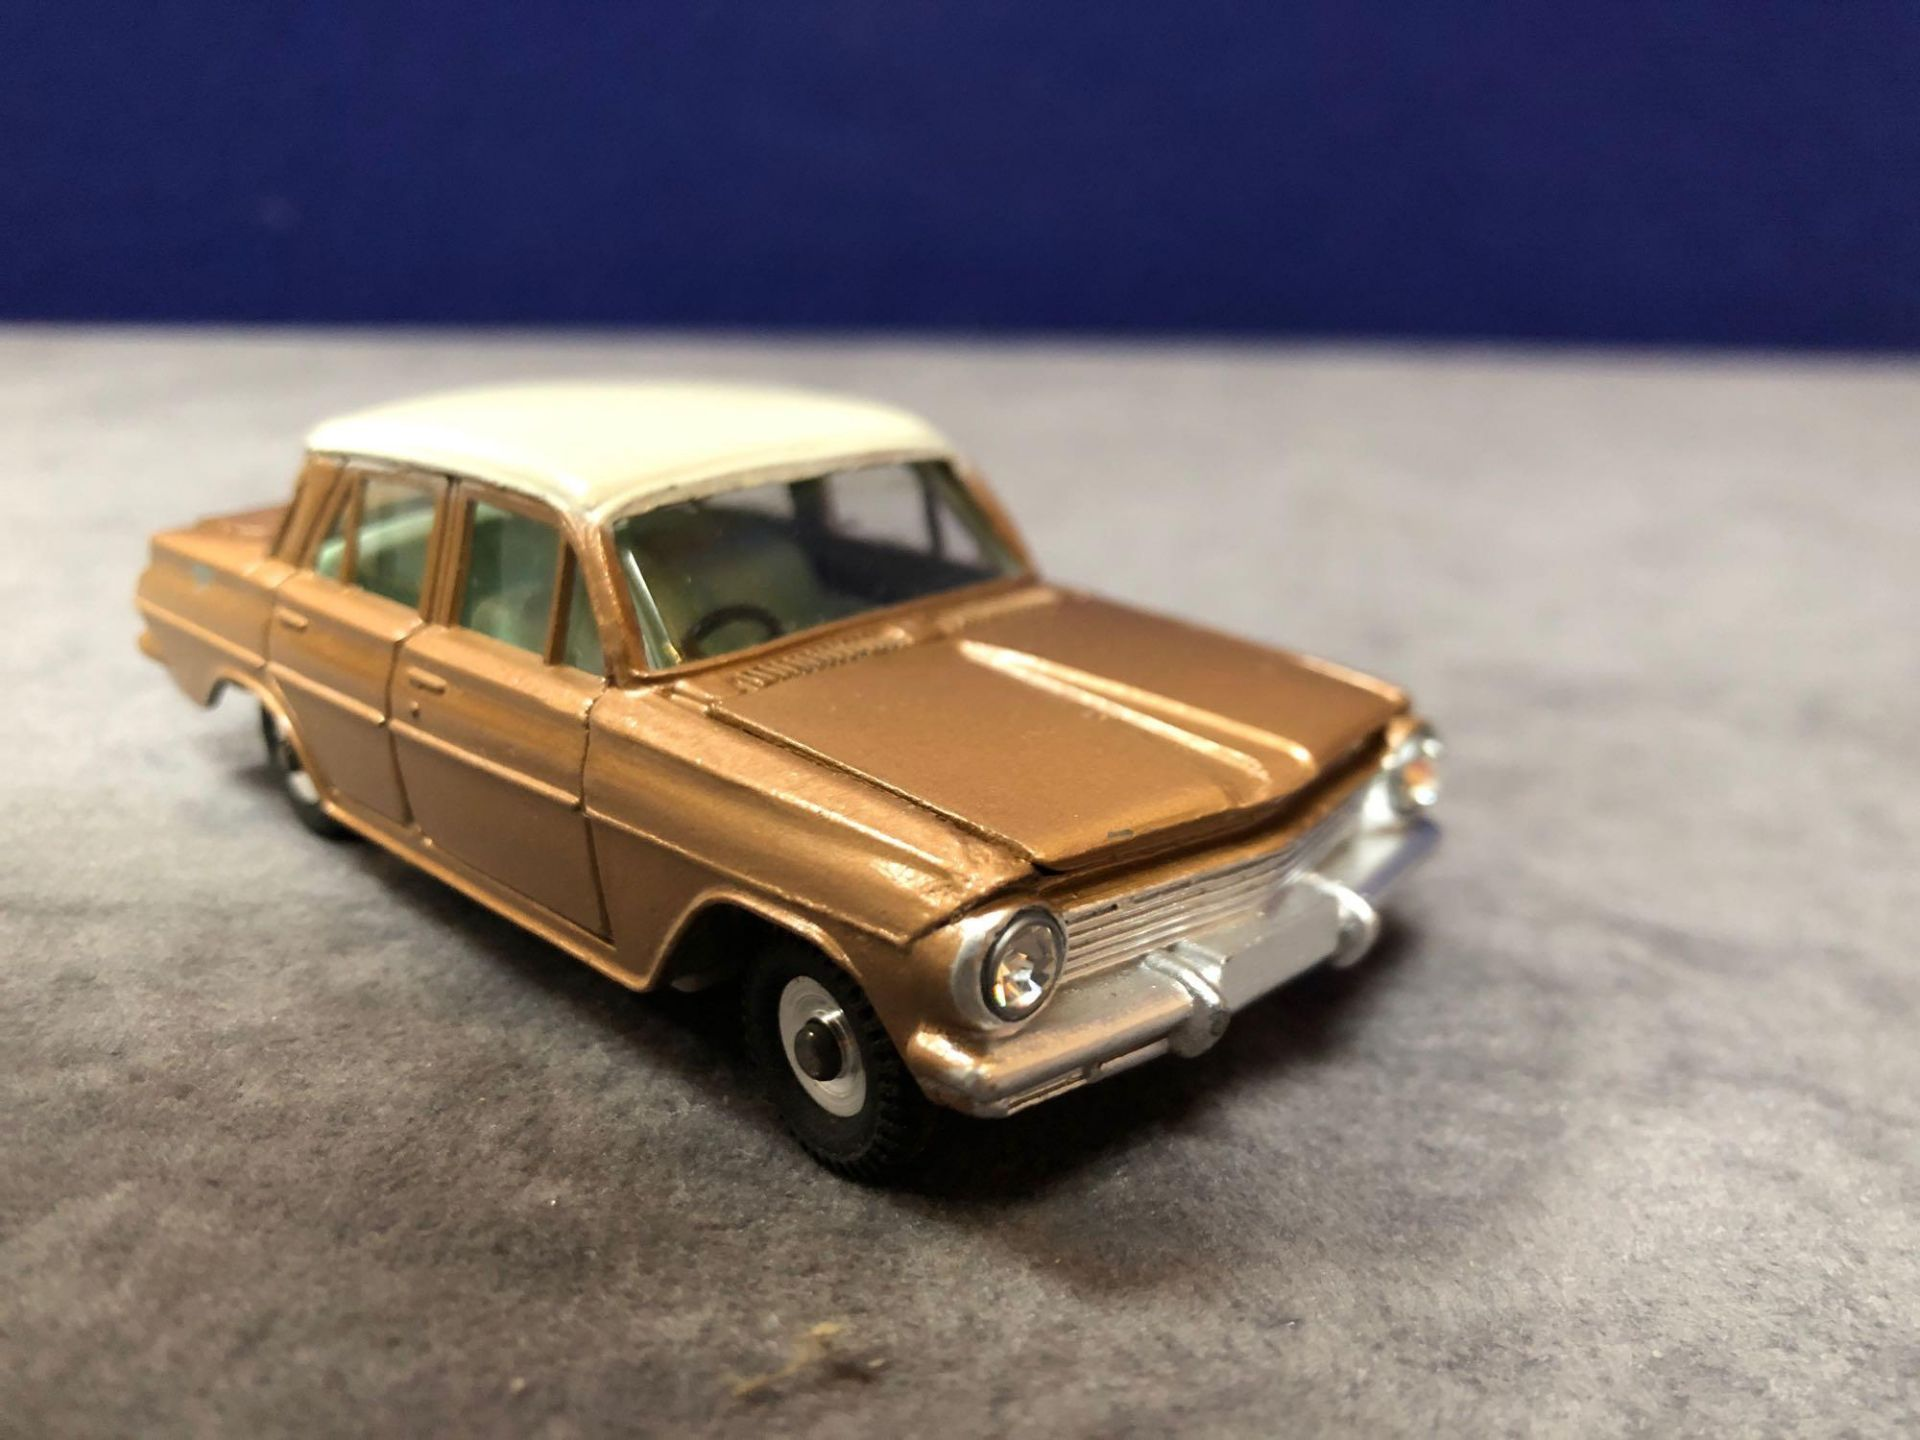 Dinky #196 Holden Special Sedan Bronze/White Or Turquoise/White - Jewelled Headlights (No - Image 2 of 4